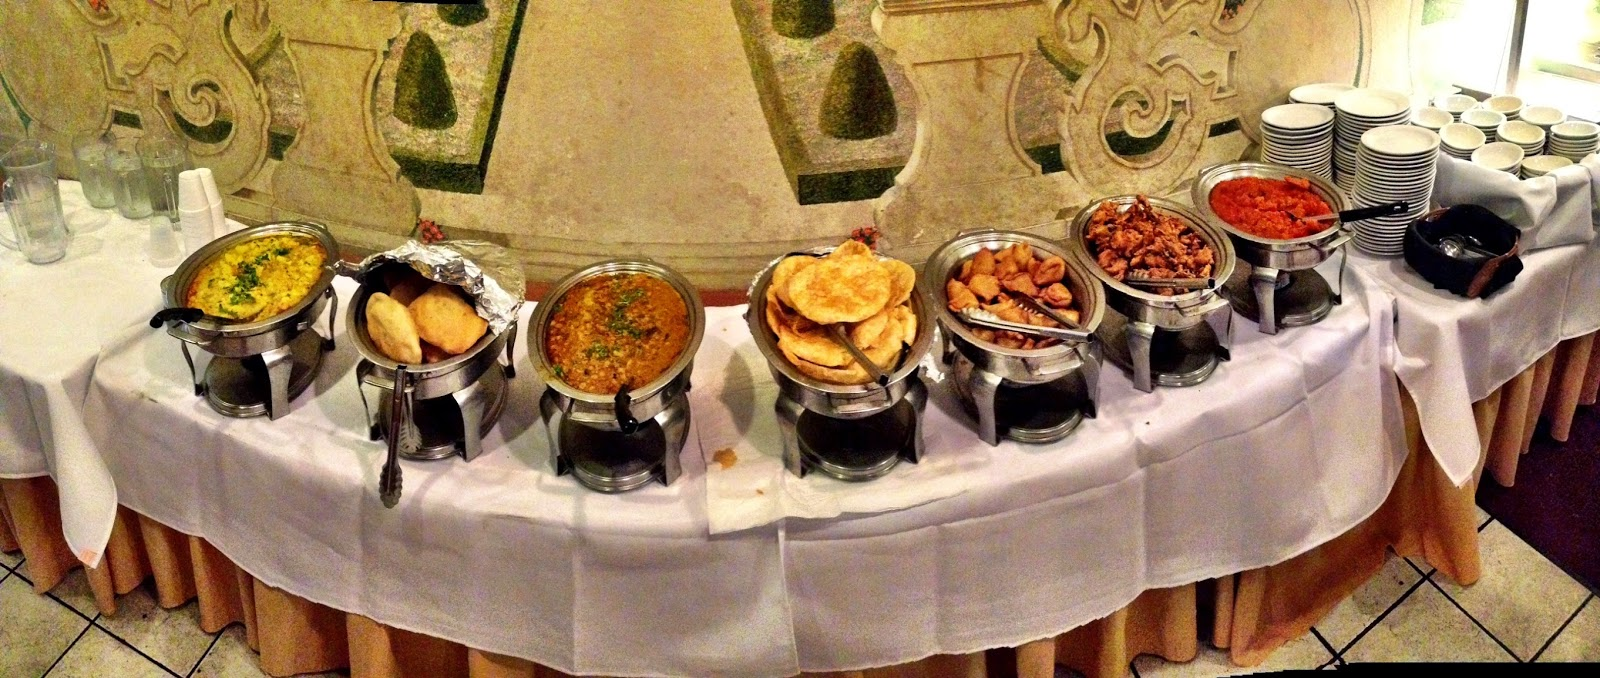 Wedding catering services in hyderabad pakistan